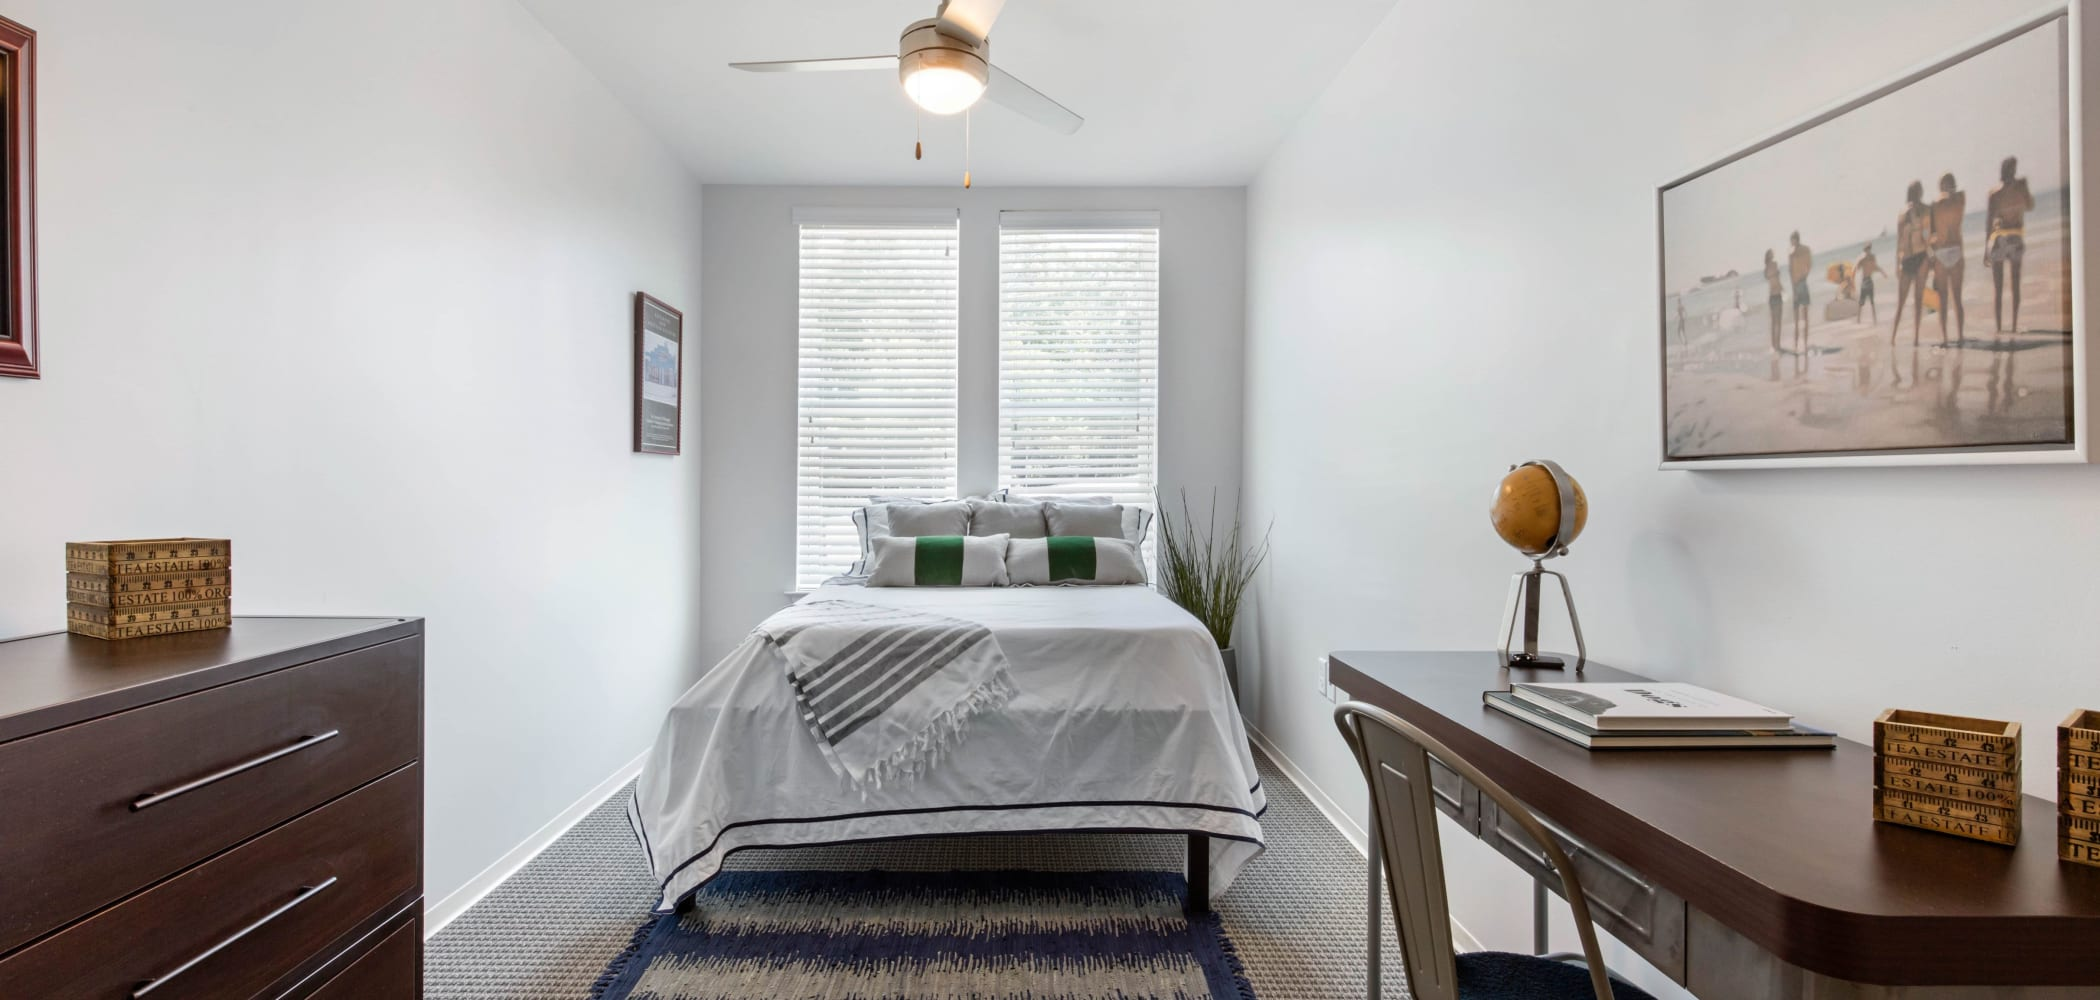 UNCOMMON Oxford bedroom with a view of Oxford, Mississippi